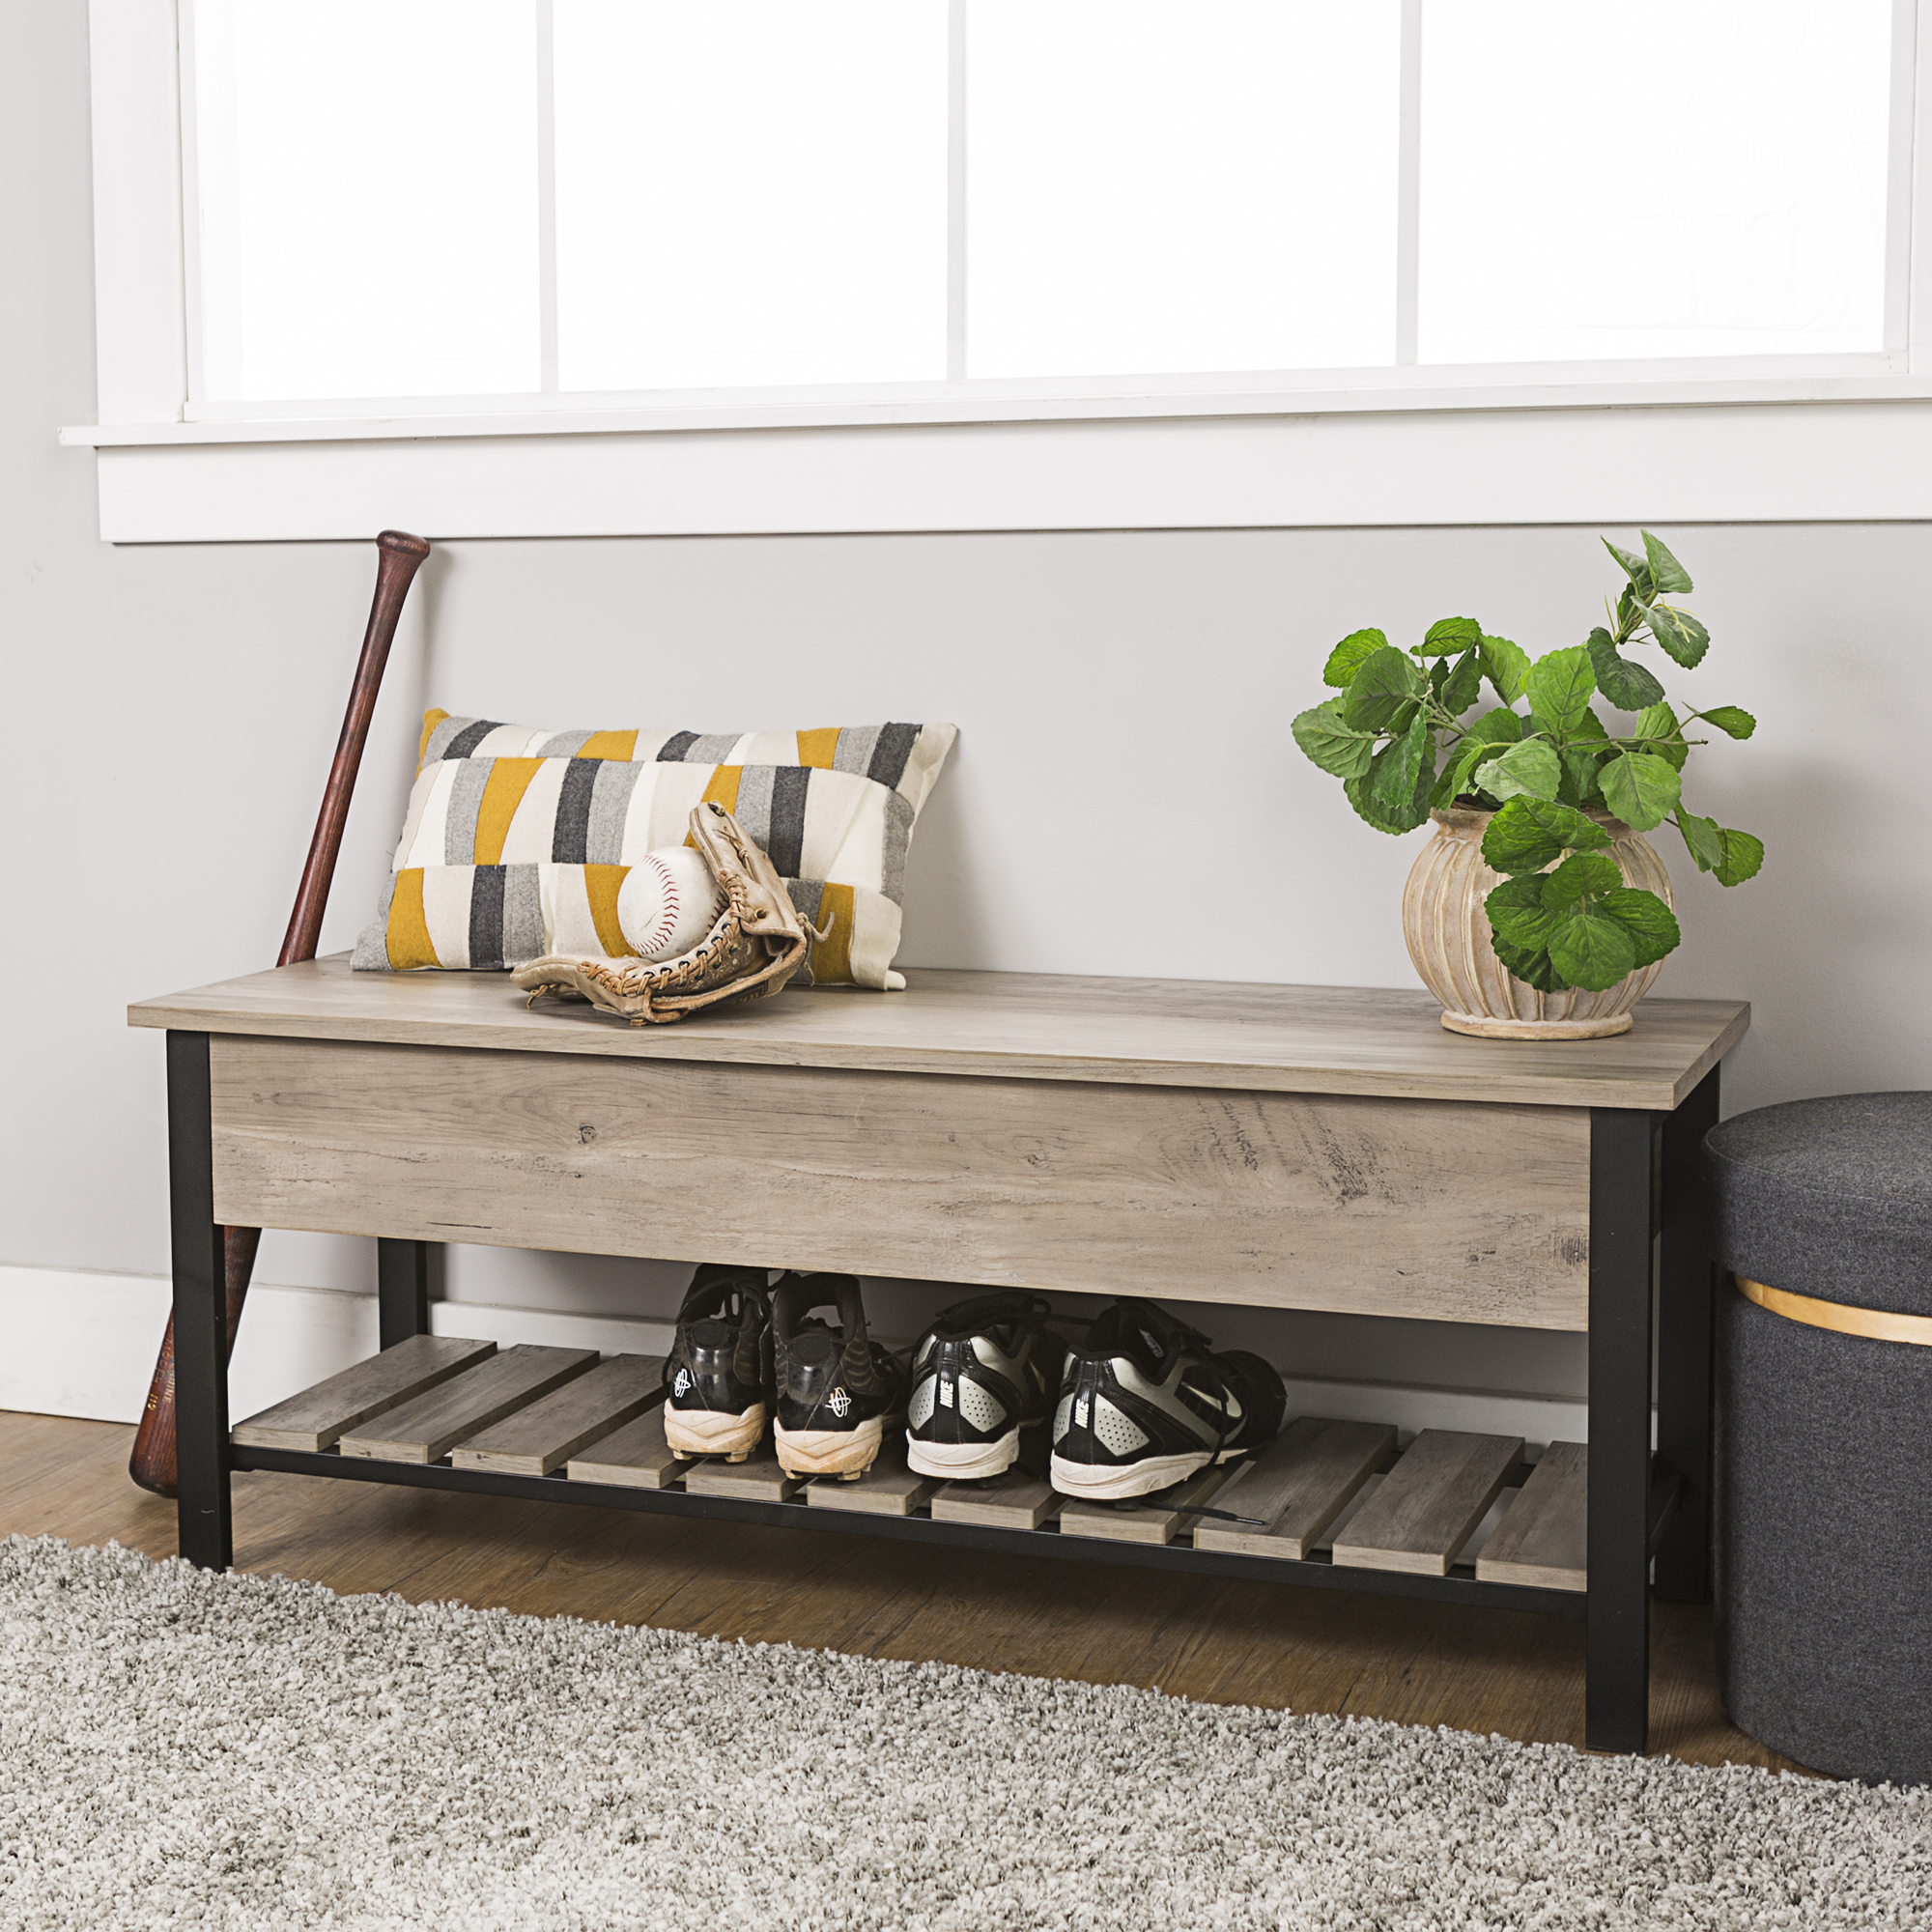 "48"" Rustic Modern Farmhouse Storage Bench with Shoe Shelf - Gray Wash"